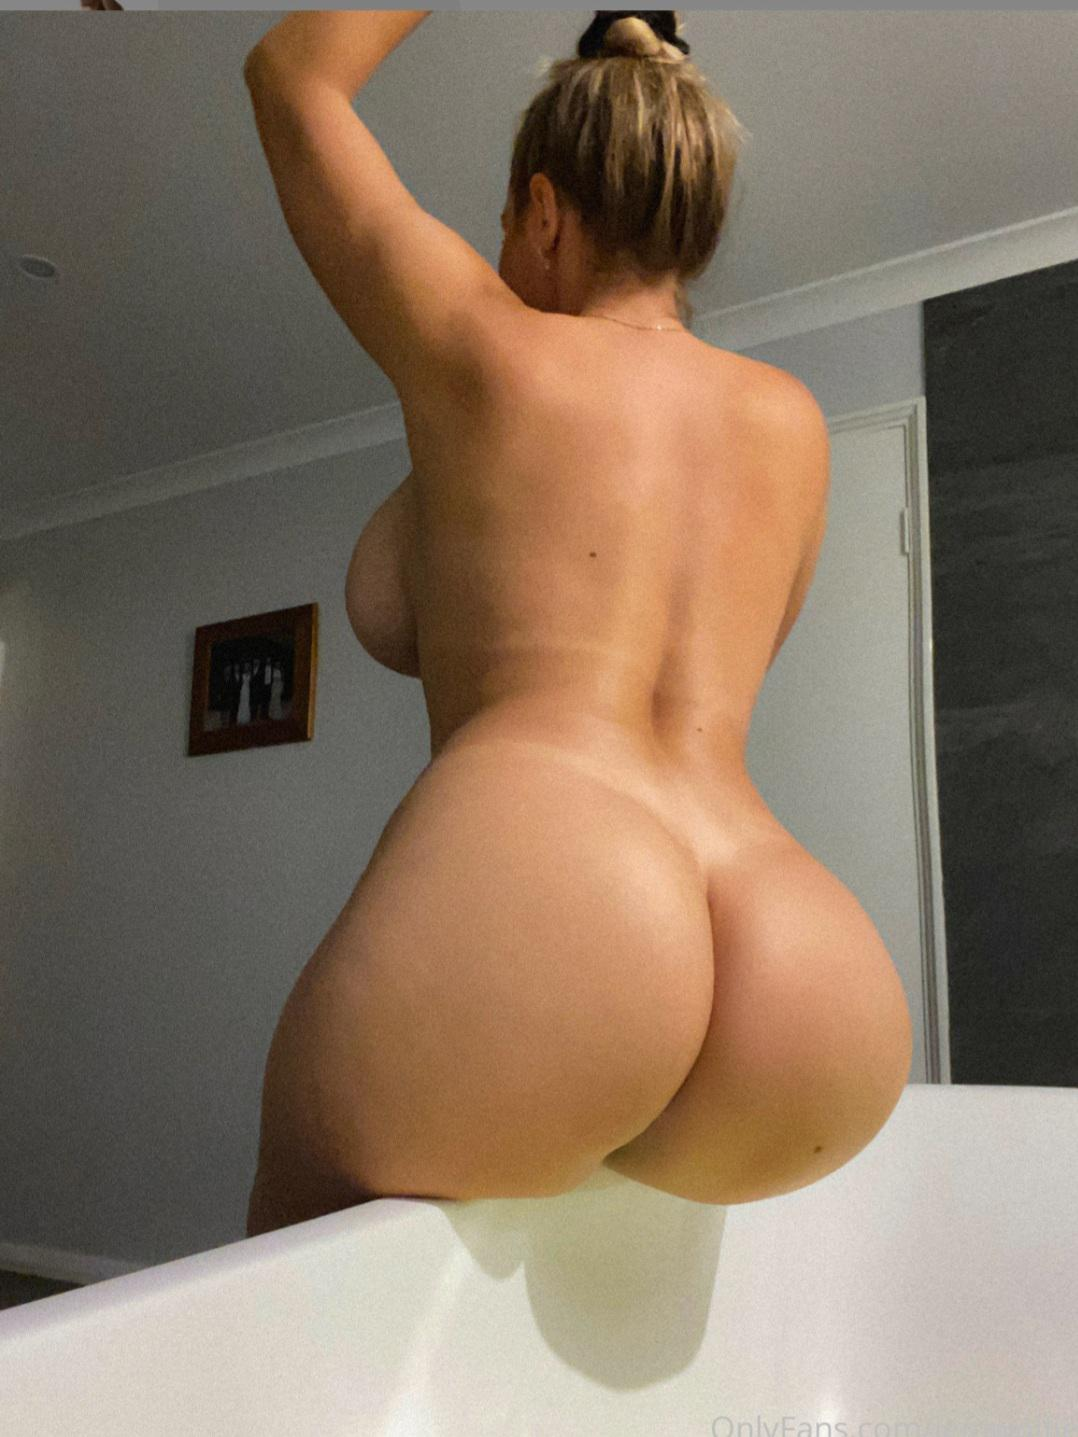 Jem Wolfie Perfect Nude Ass - Jem Wolfie Jiggle Nude Natural Big Boobs OnlyFans